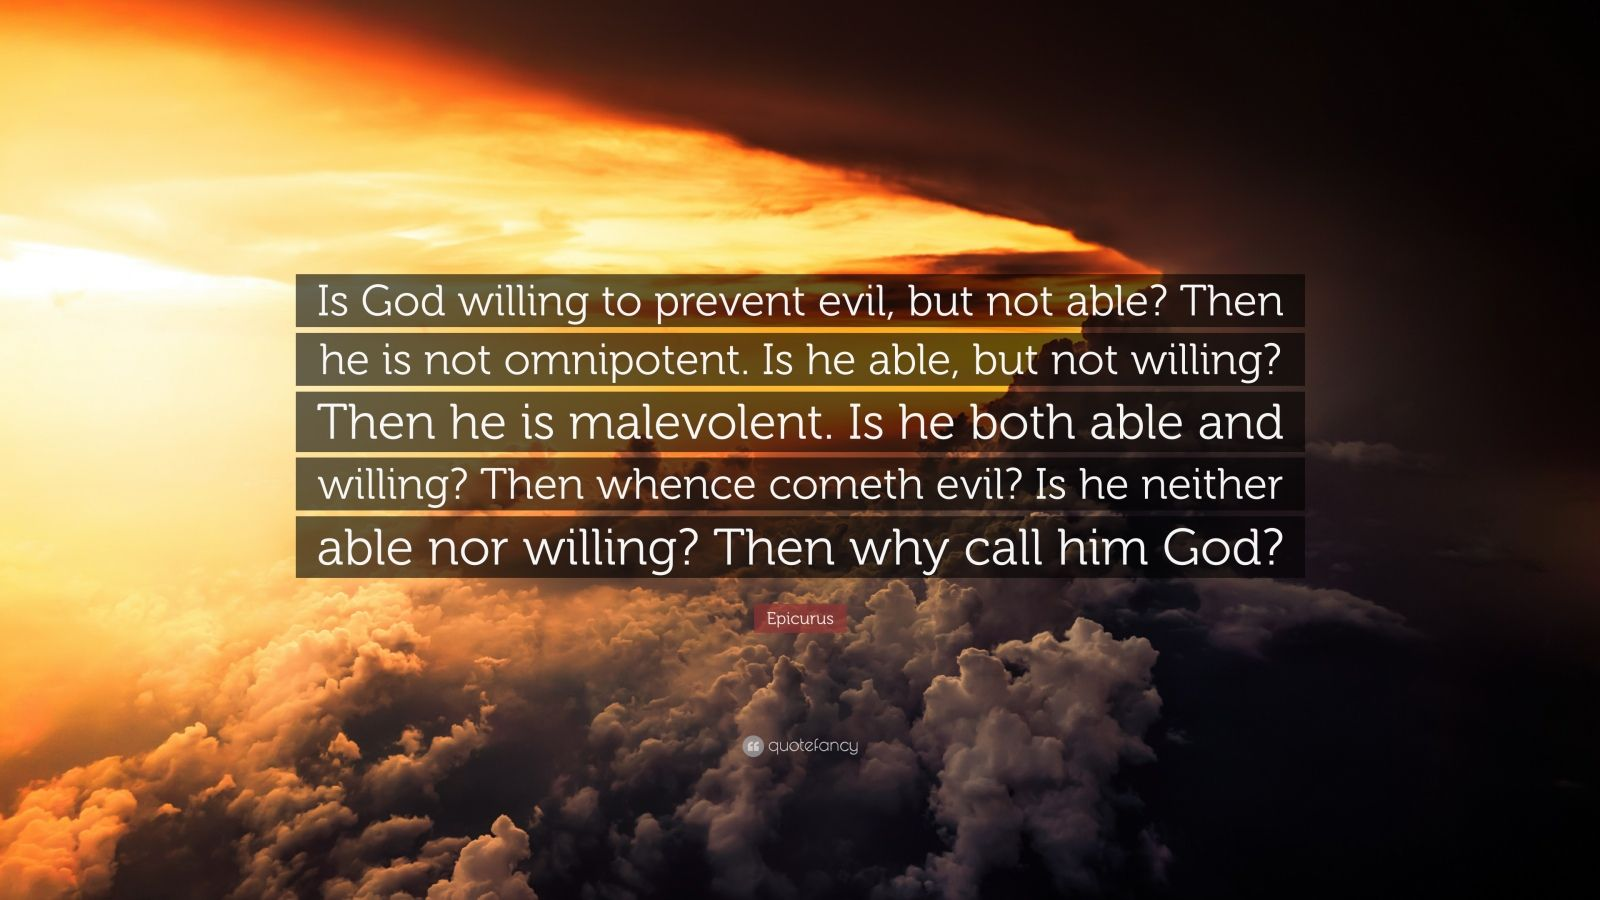 Beautiful Inspirational Quotes Wallpapers Epicurus Quote Is God Willing To Prevent Evil But Not